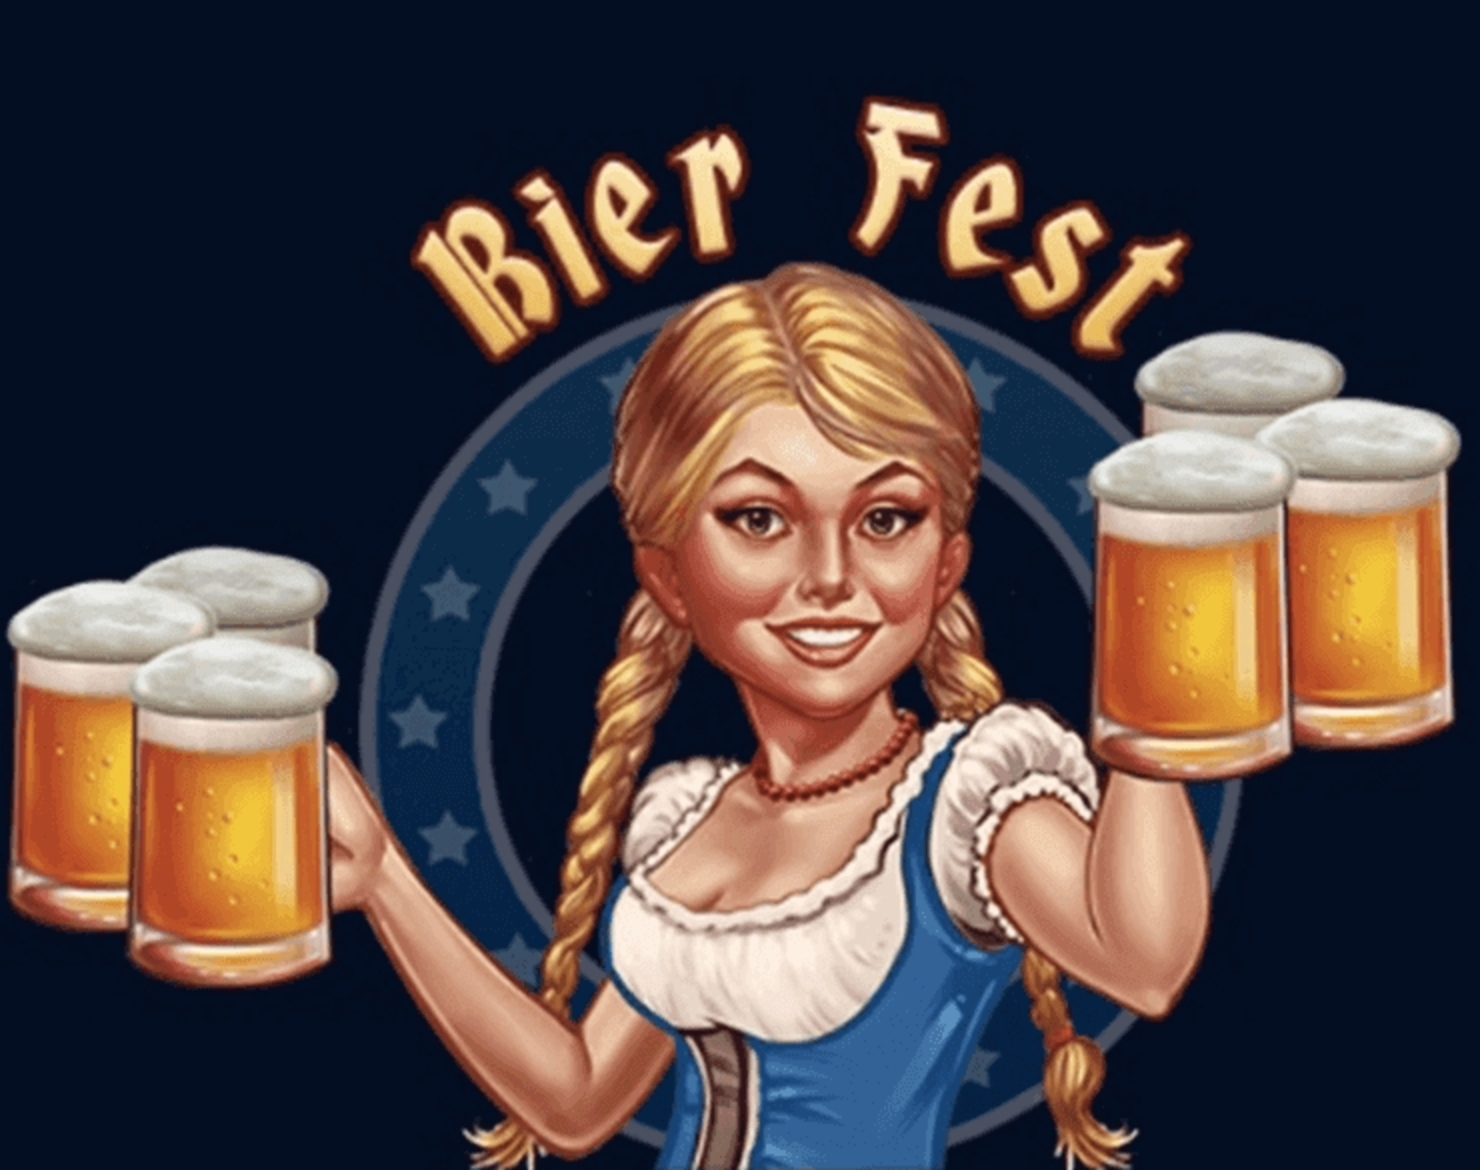 Bier Fest Online Slot Demo Game by Genesis Gaming